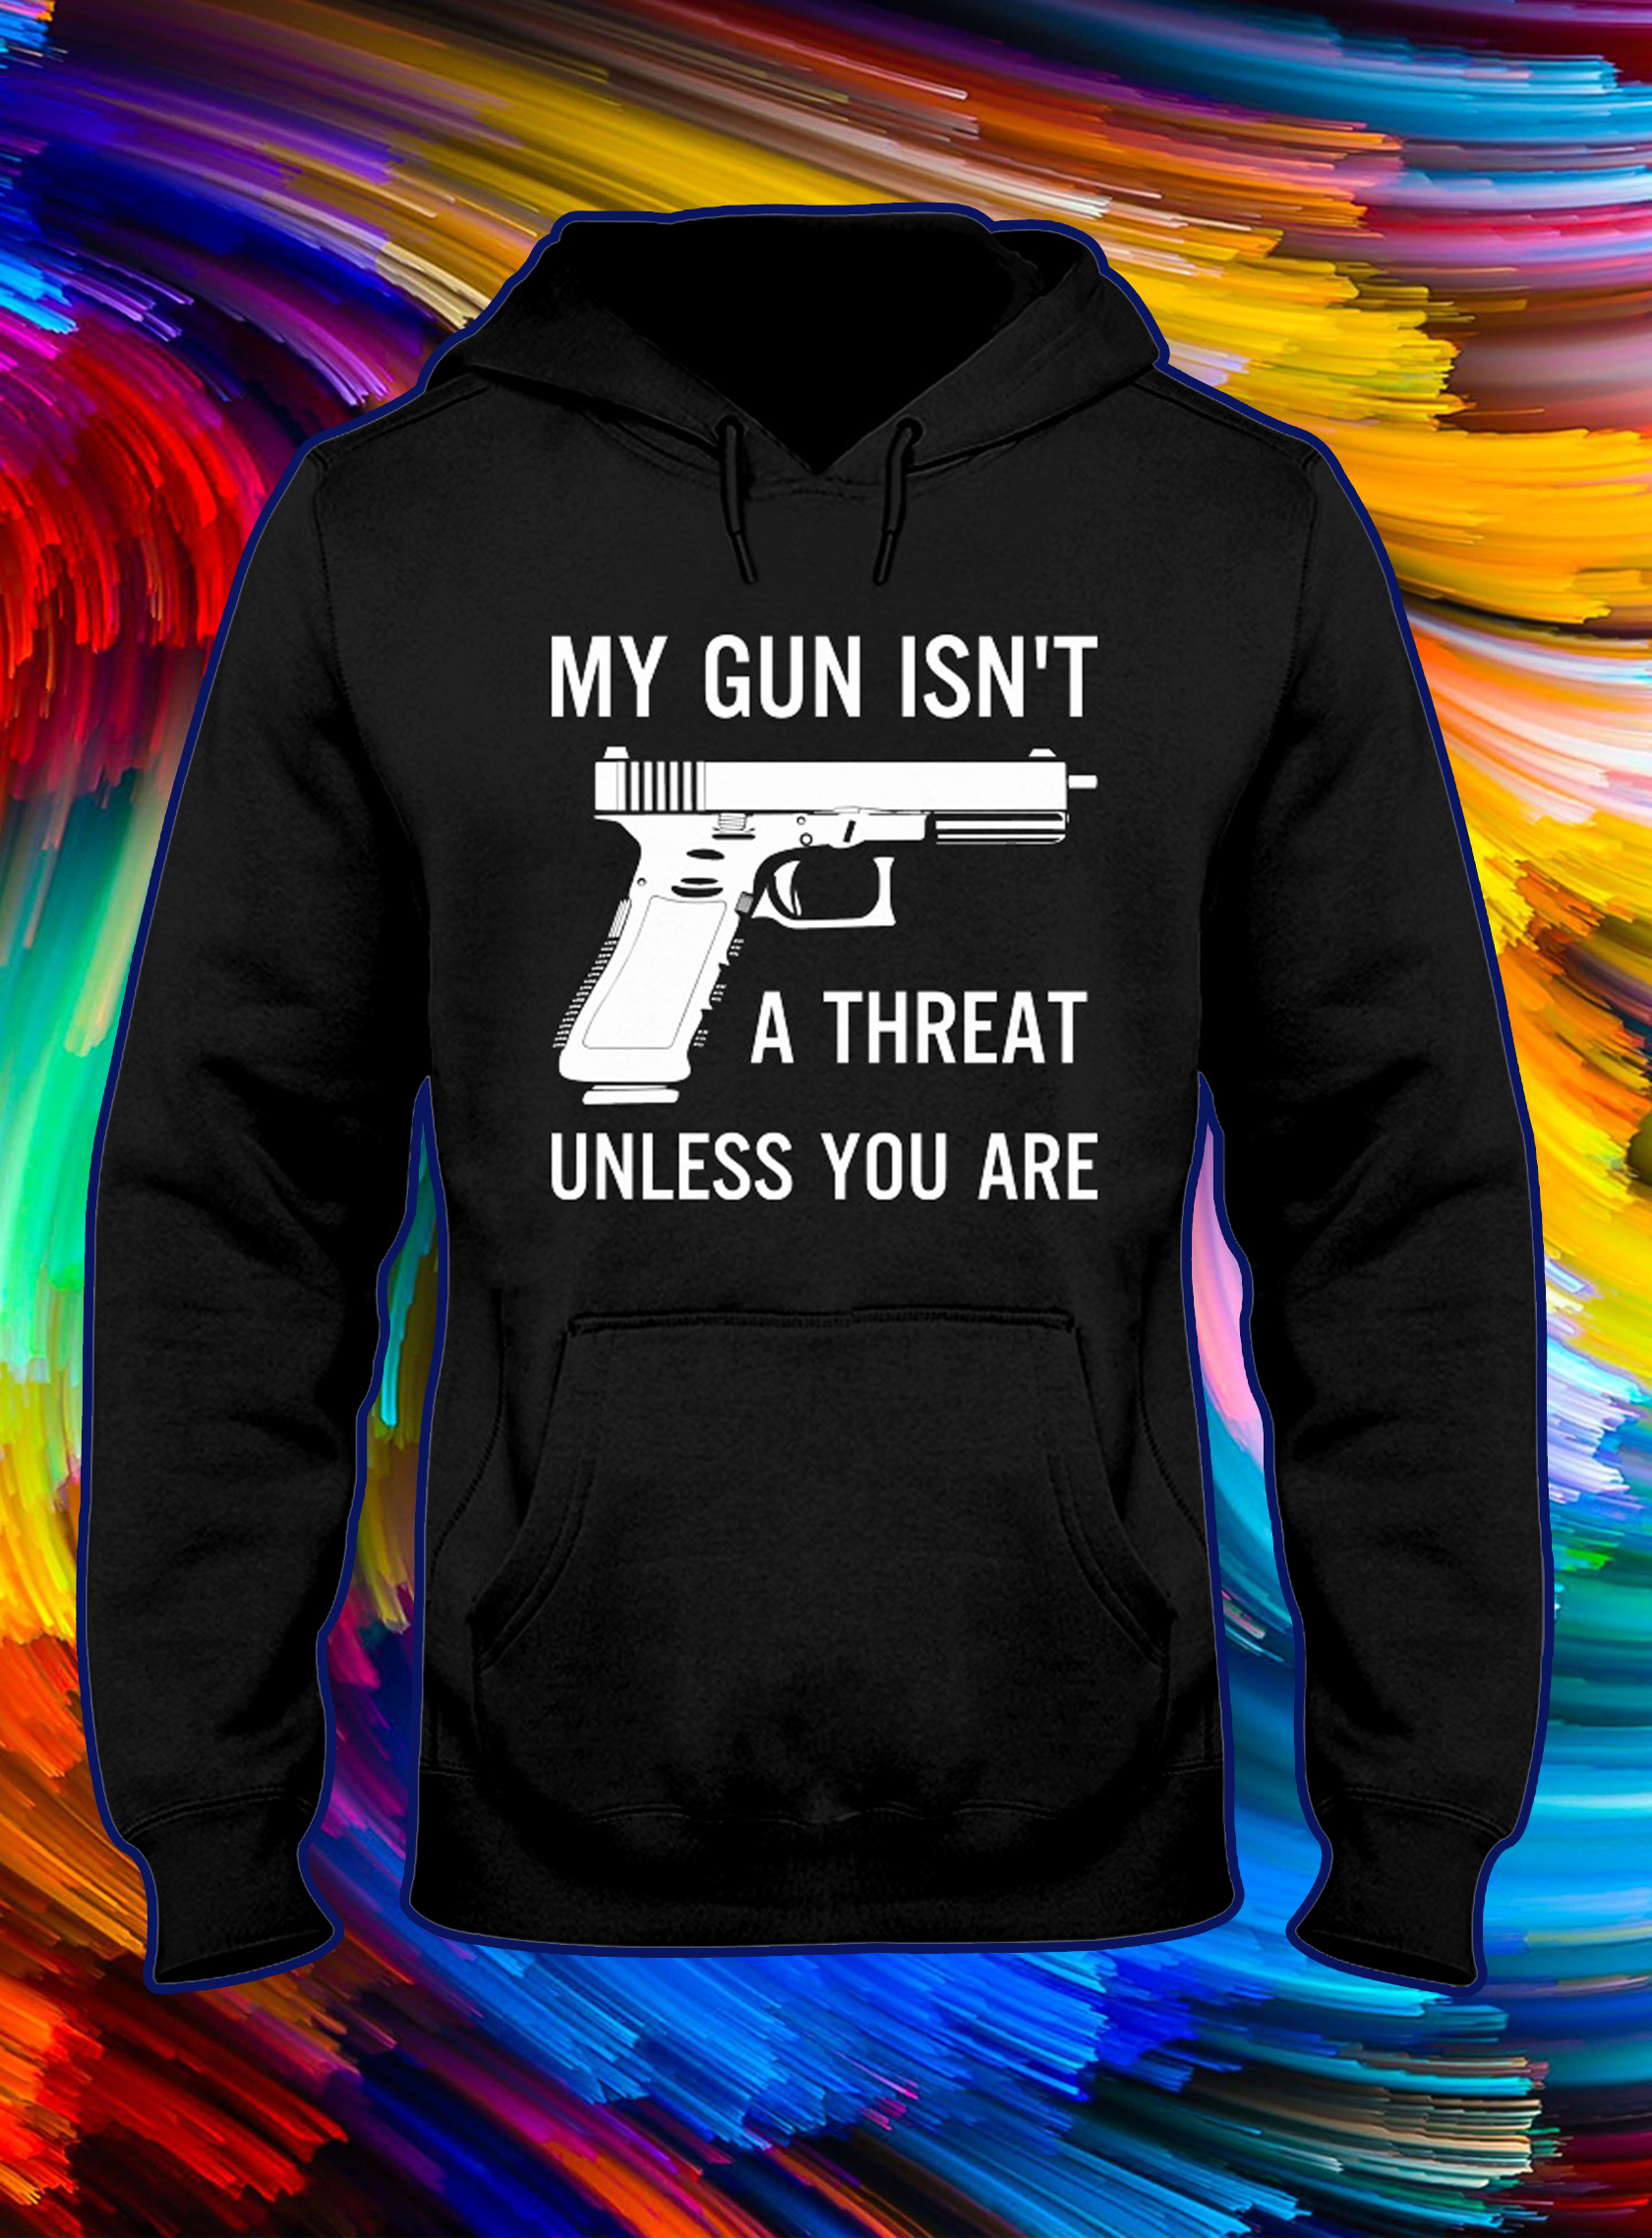 My gun isn't a threat unless you are hoodie